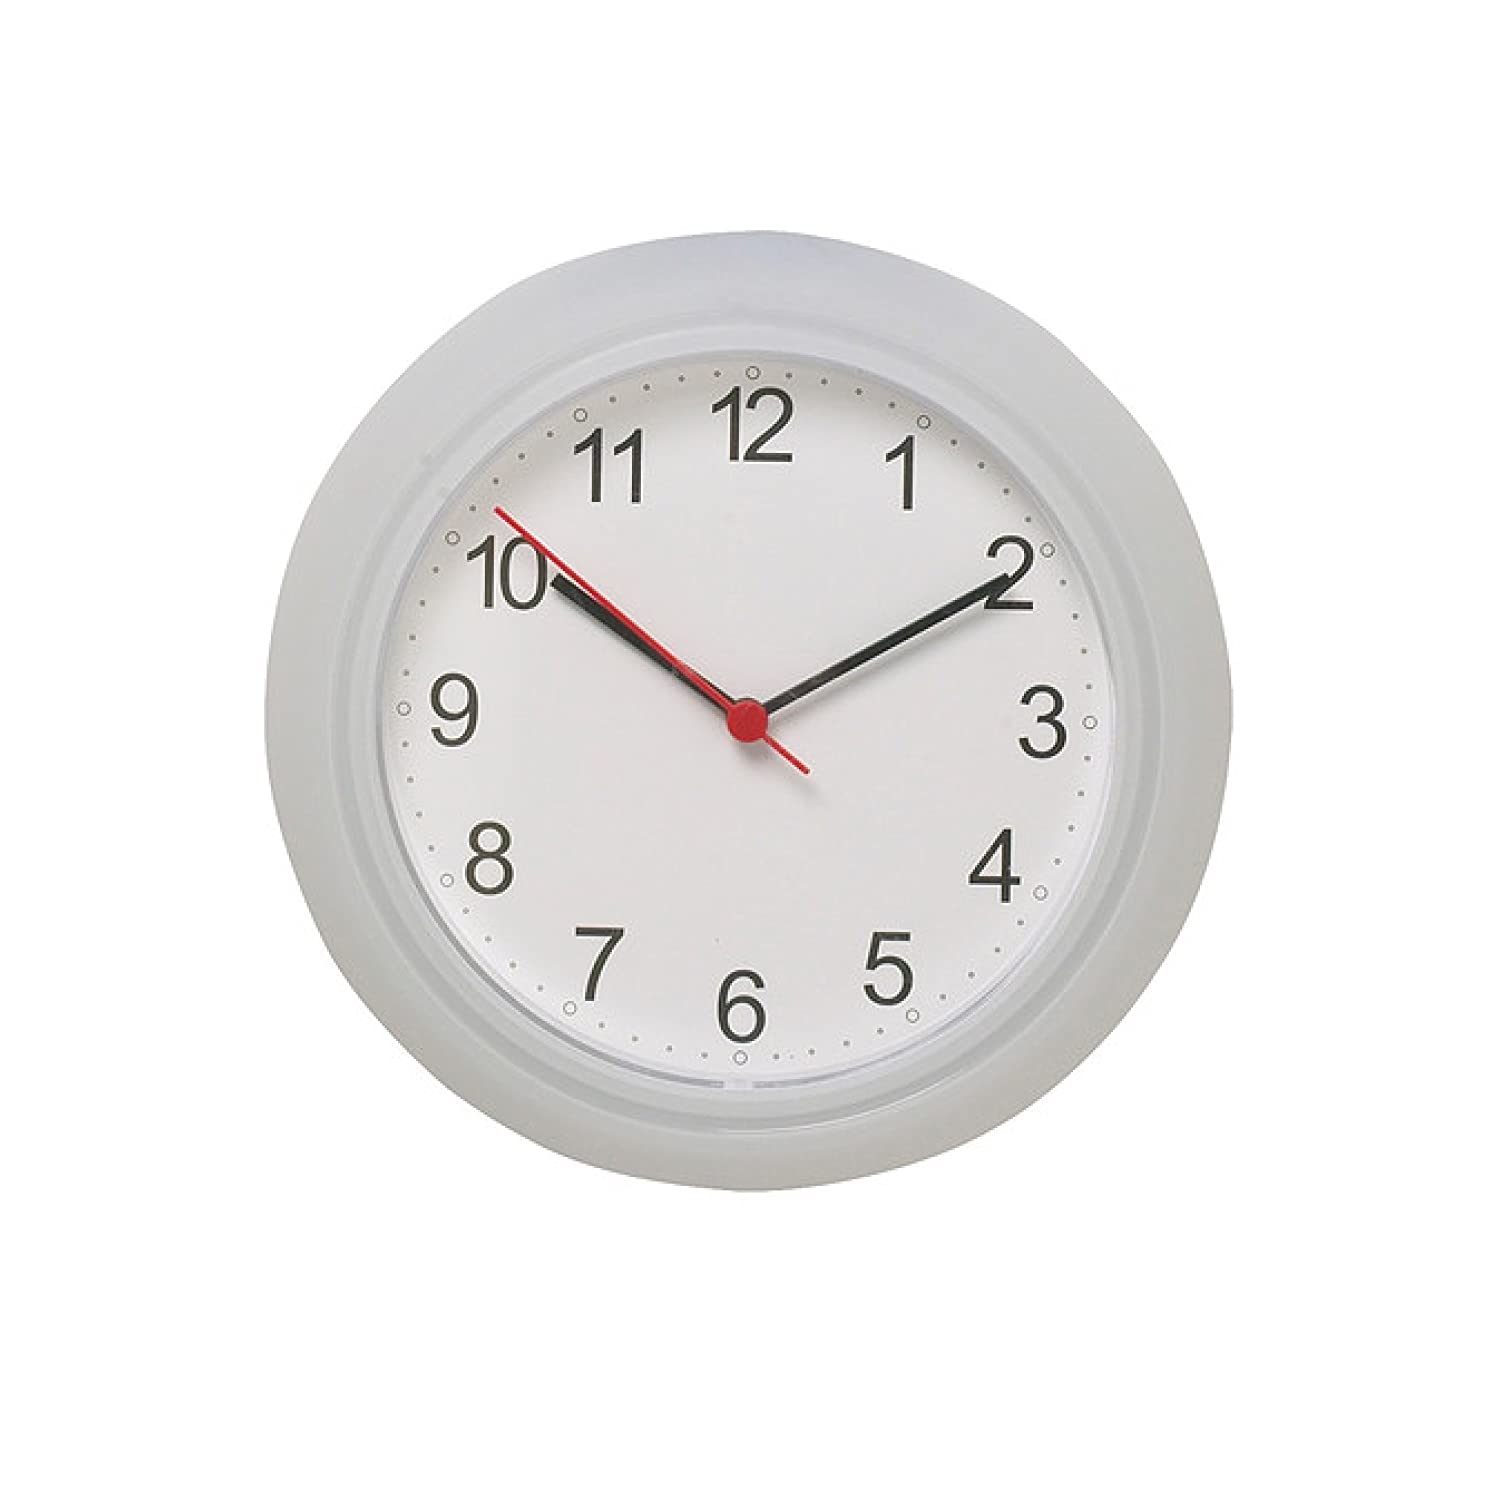 Clocks for bathroom wall - Clocks For Bathroom Wall 42